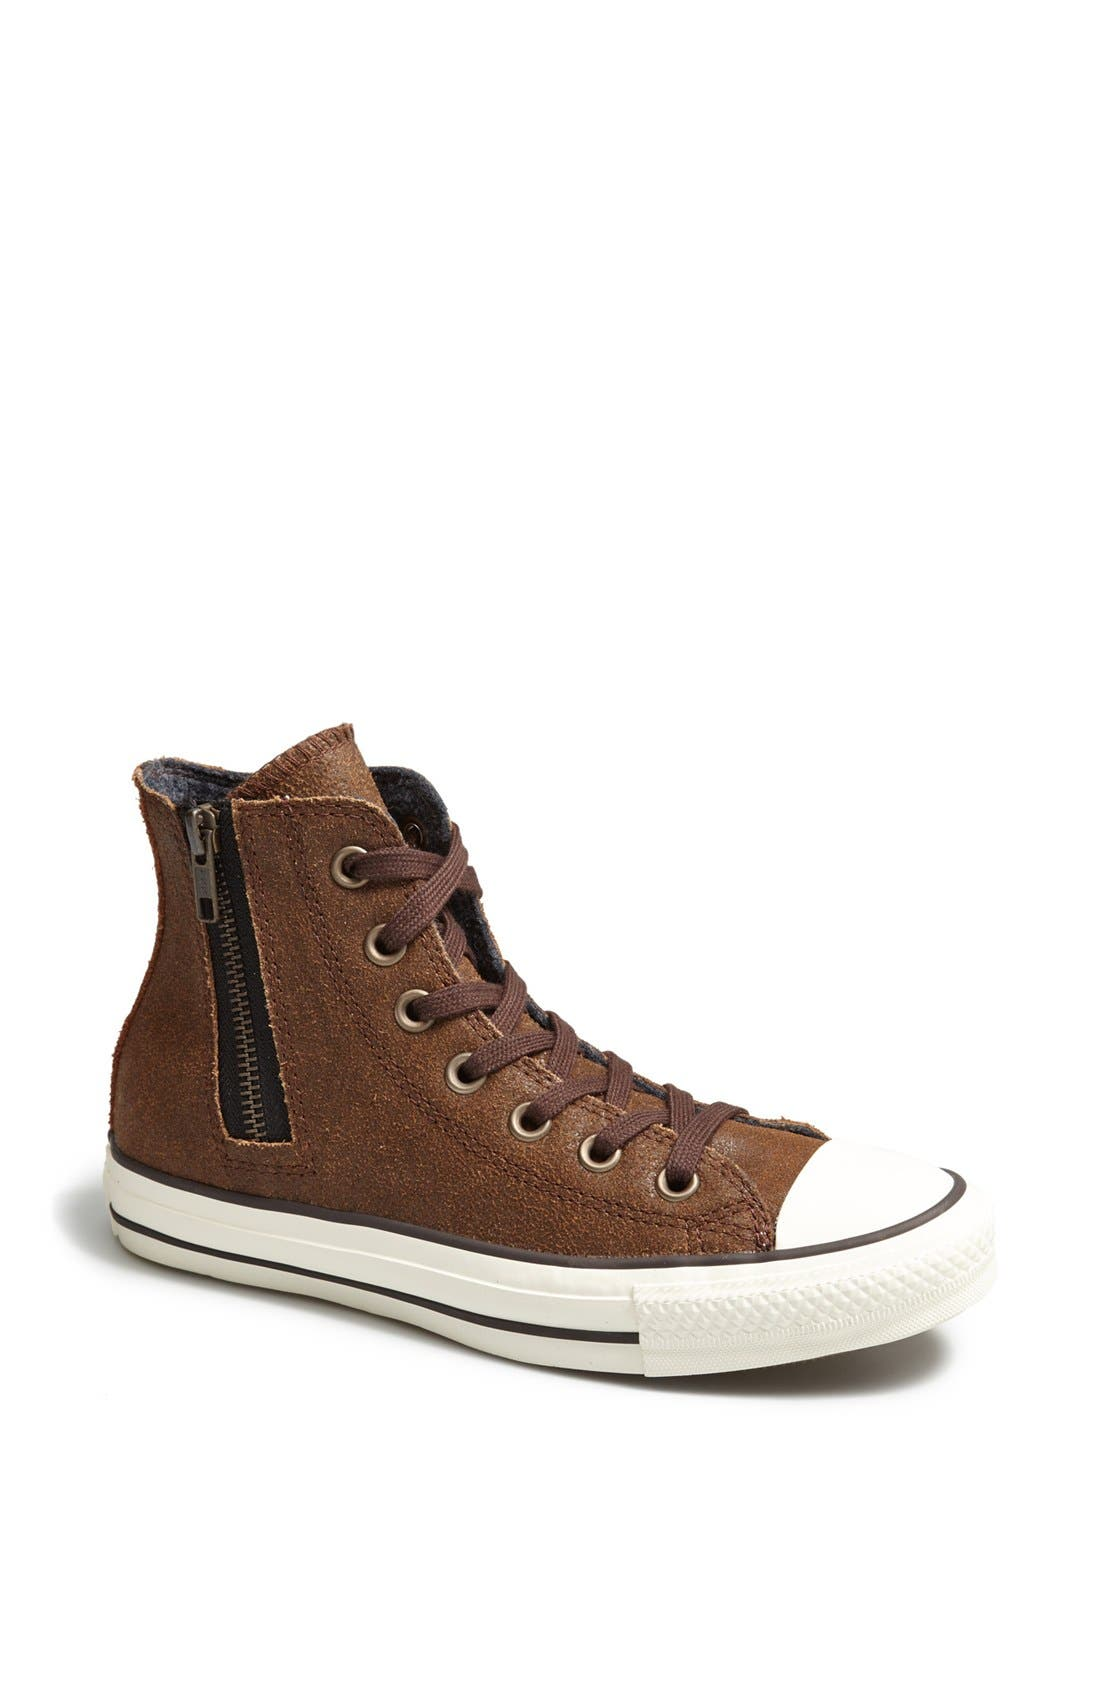 Alternate Image 1 Selected - Converse Chuck Taylor® 'Aviator' Side Zip Leather High Top Sneaker (Women)